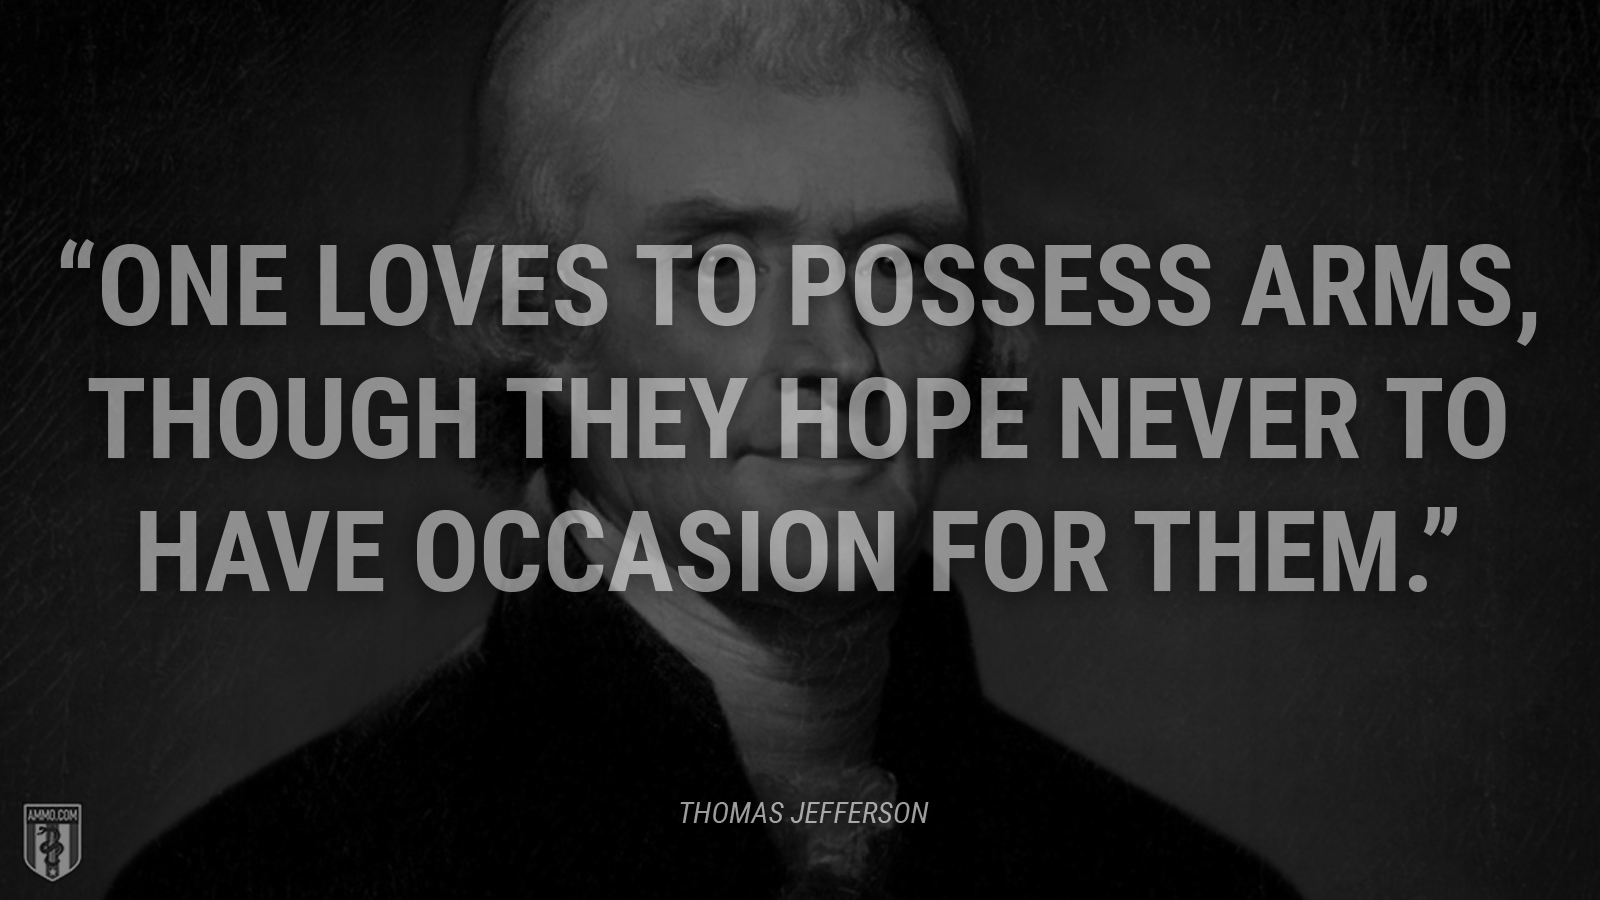 """One loves to possess arms, though they hope never to have occasion for them."" - Thomas Jefferson"